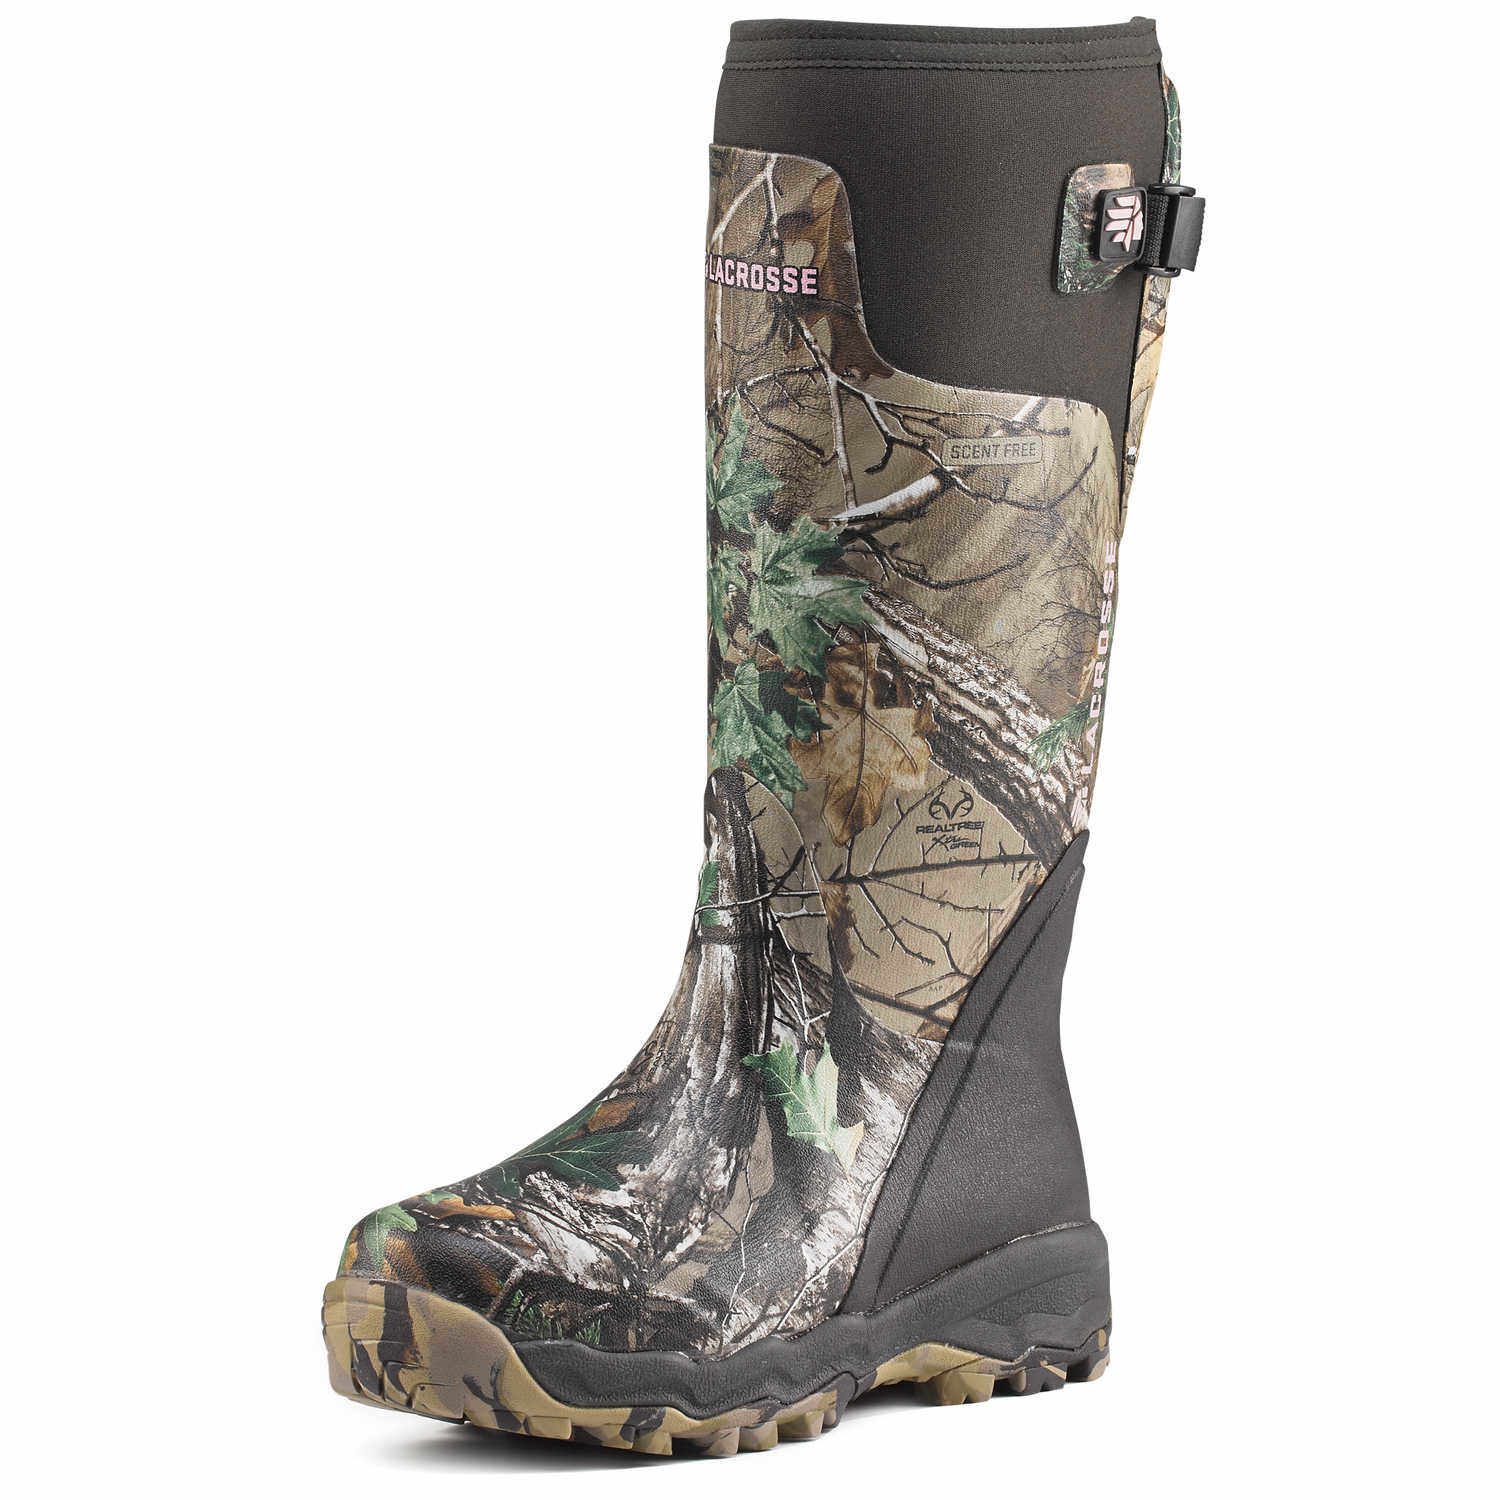 """69f011effda Details about 15"""" Size 6 LaCrosse Women's Alphaburly Pro Realtree Xtra  Green Boots"""